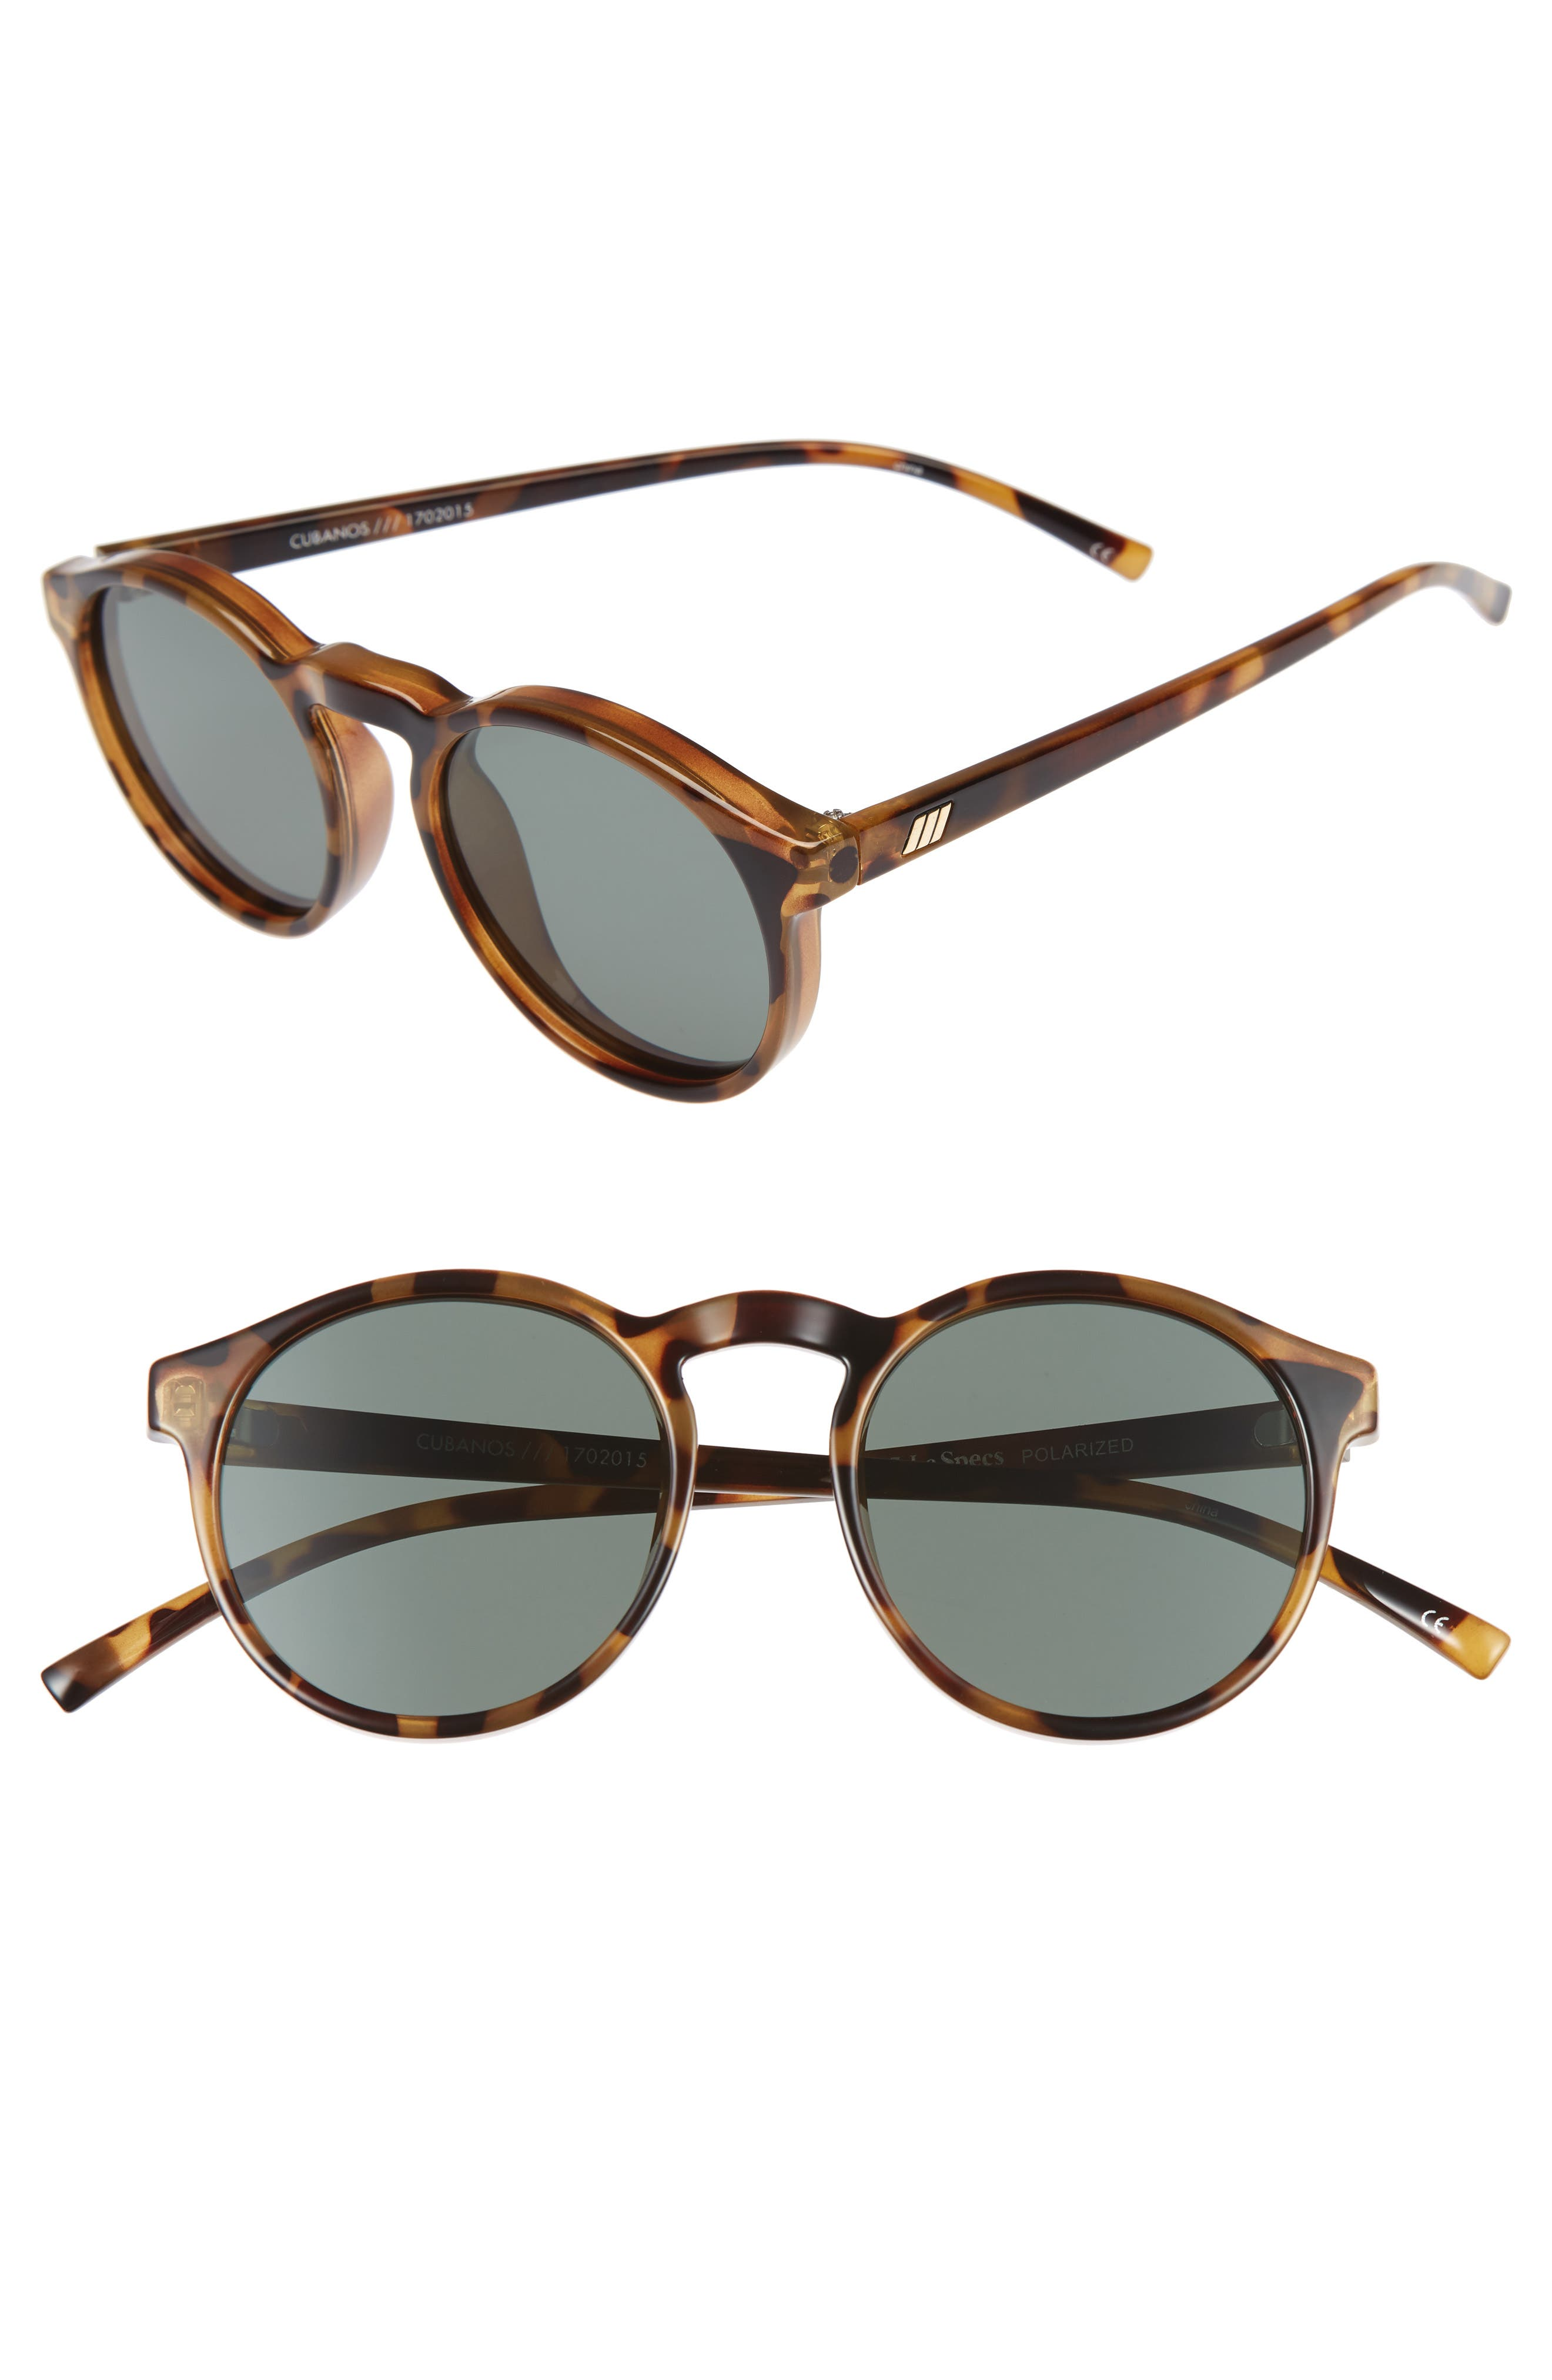 Cubanos 47mm Round Sunglasses,                             Main thumbnail 1, color,                             Milky Tortoise